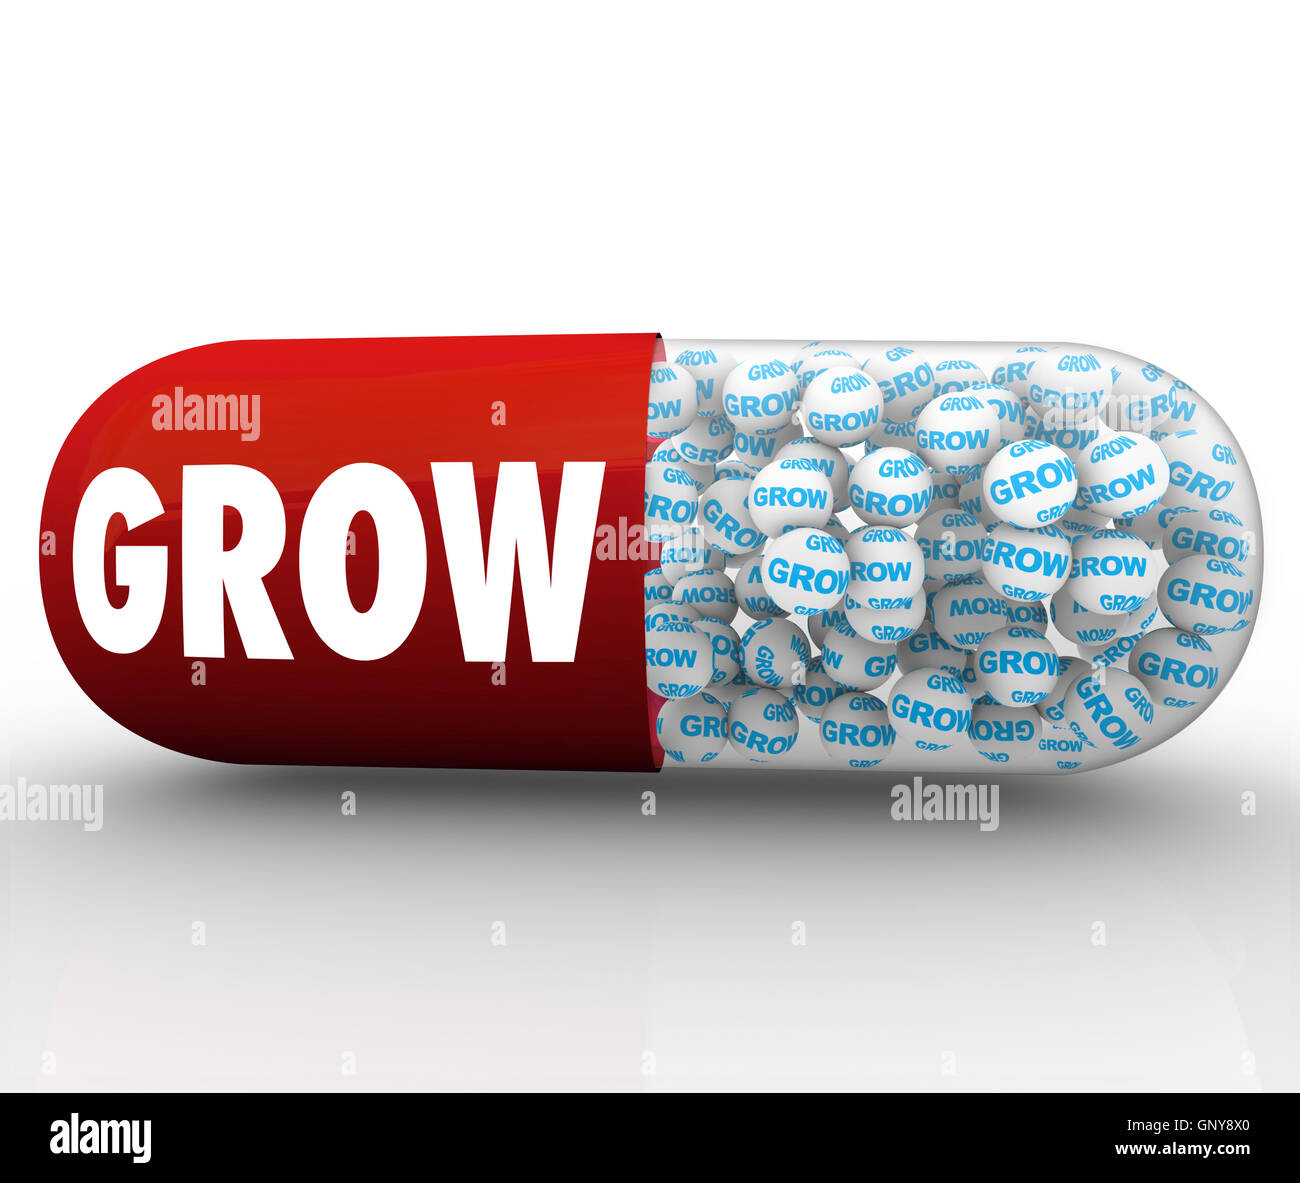 Grow Capsule Pill Instant Growth Improvement - Stock Image